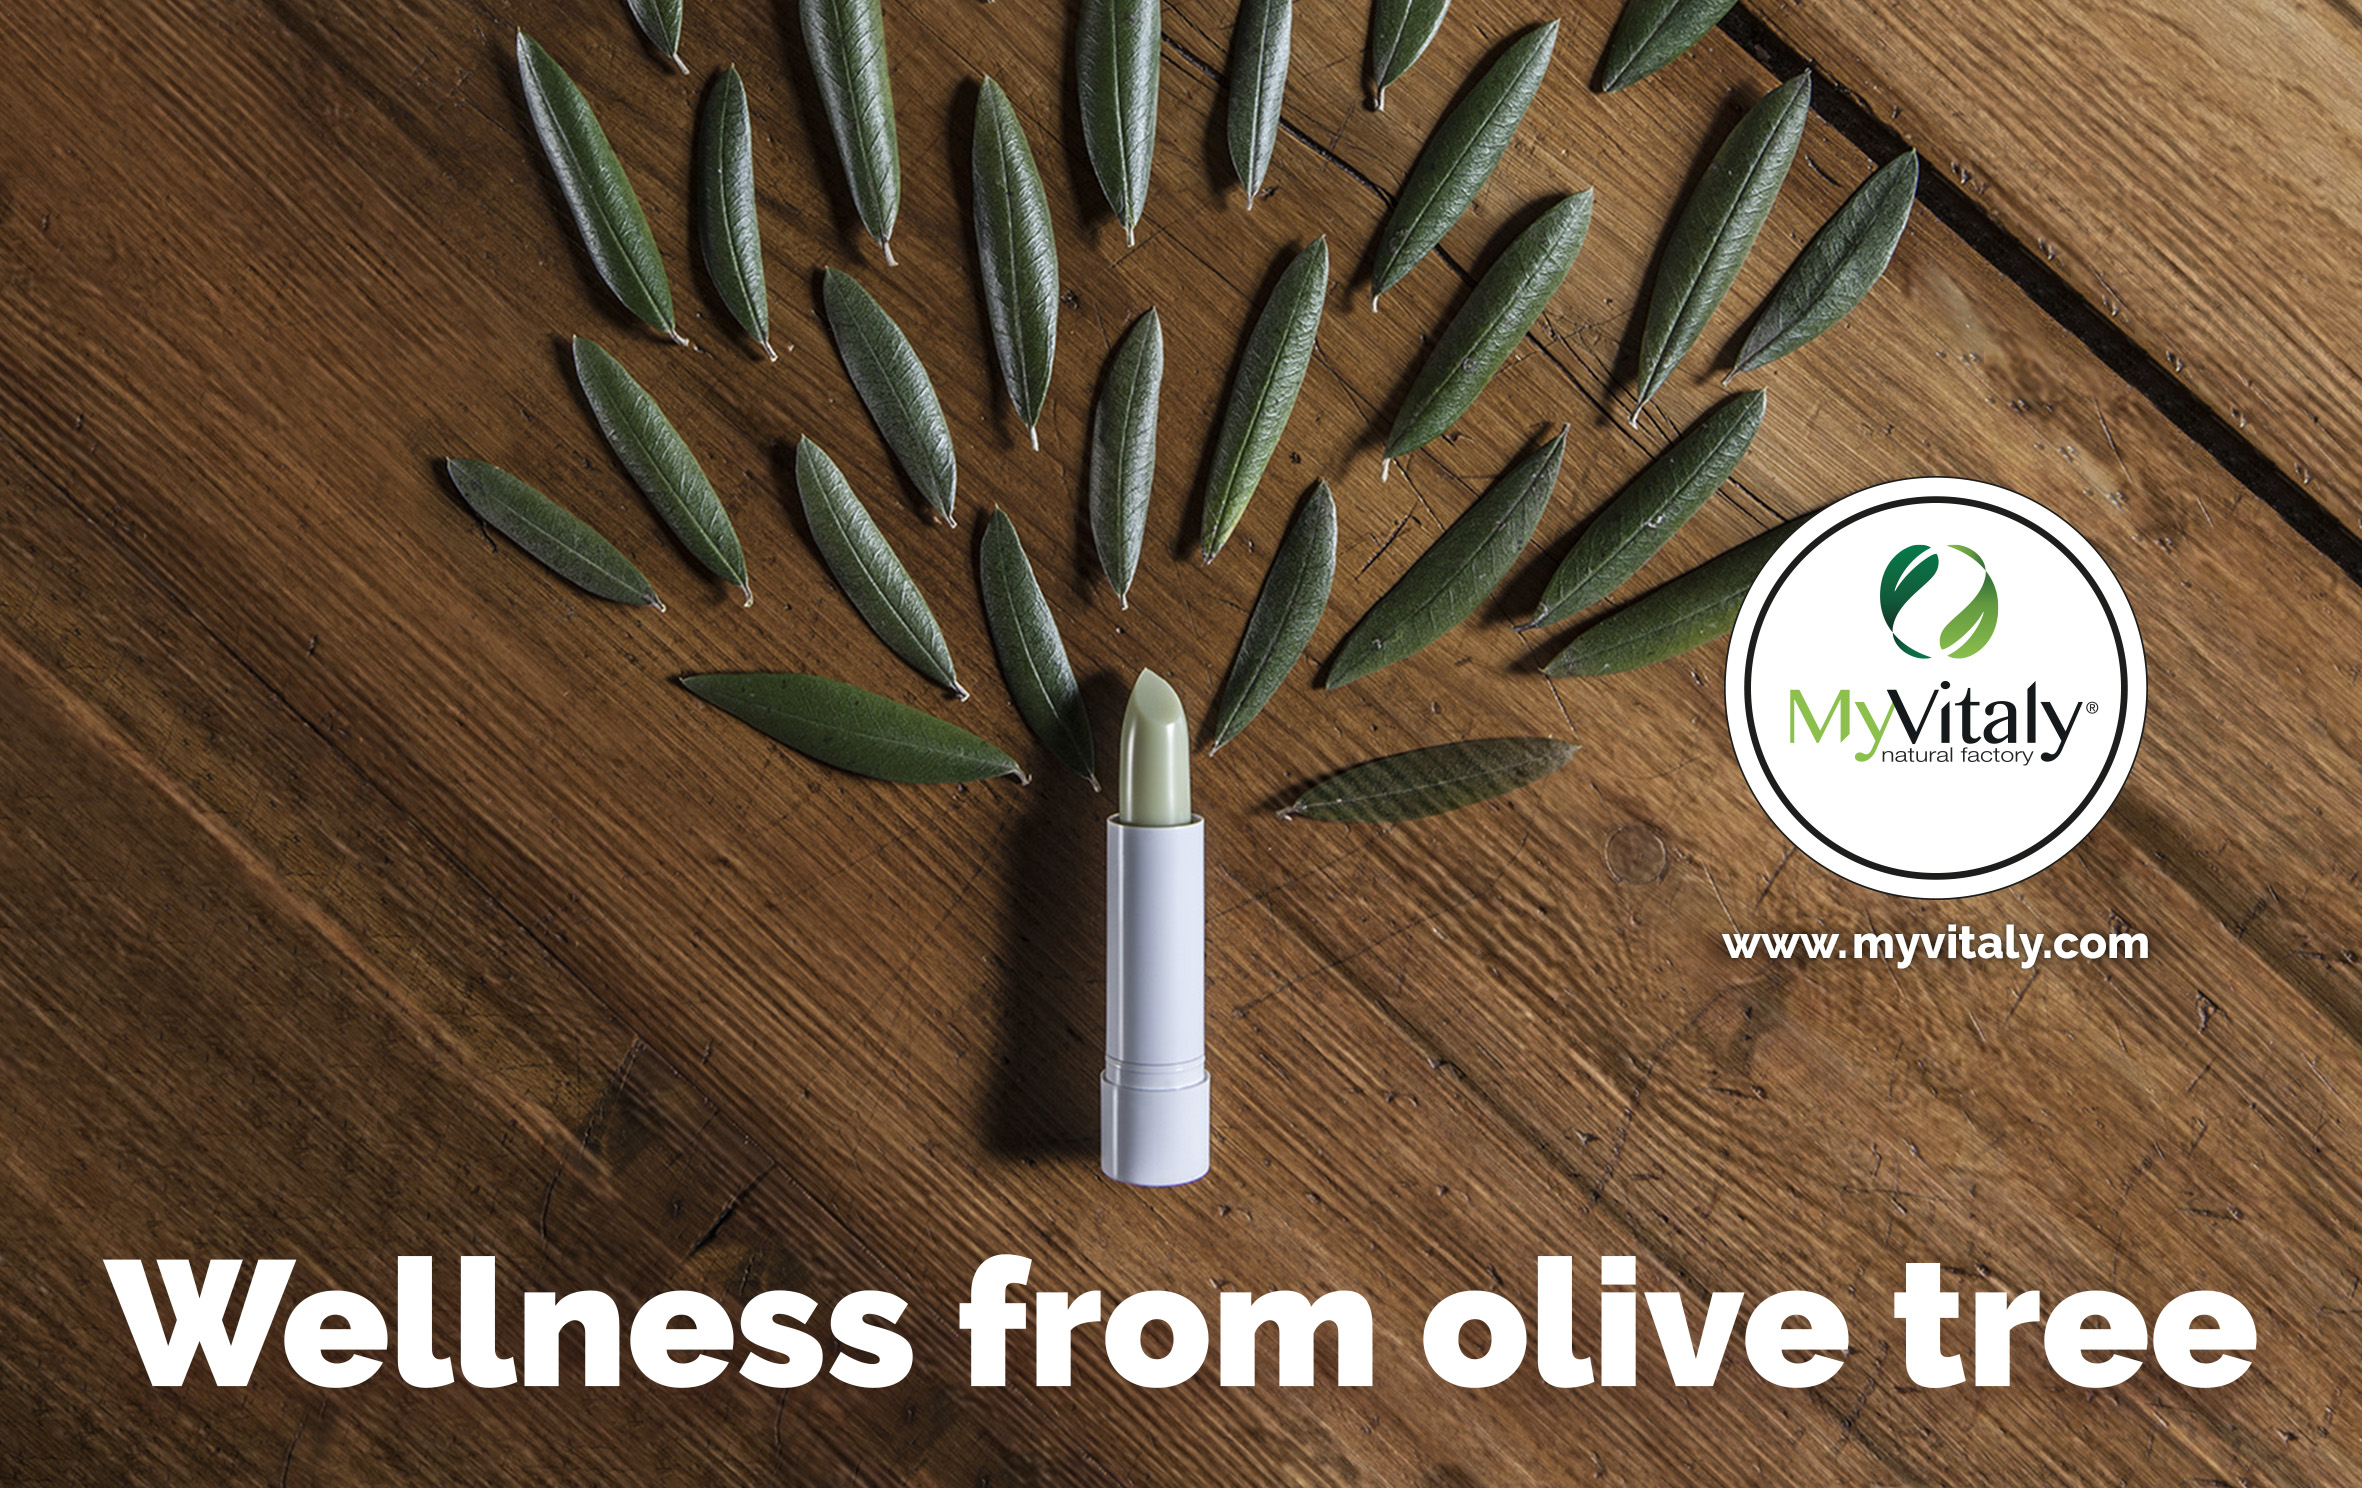 Olive_leaf_extract_benefits_image_EN